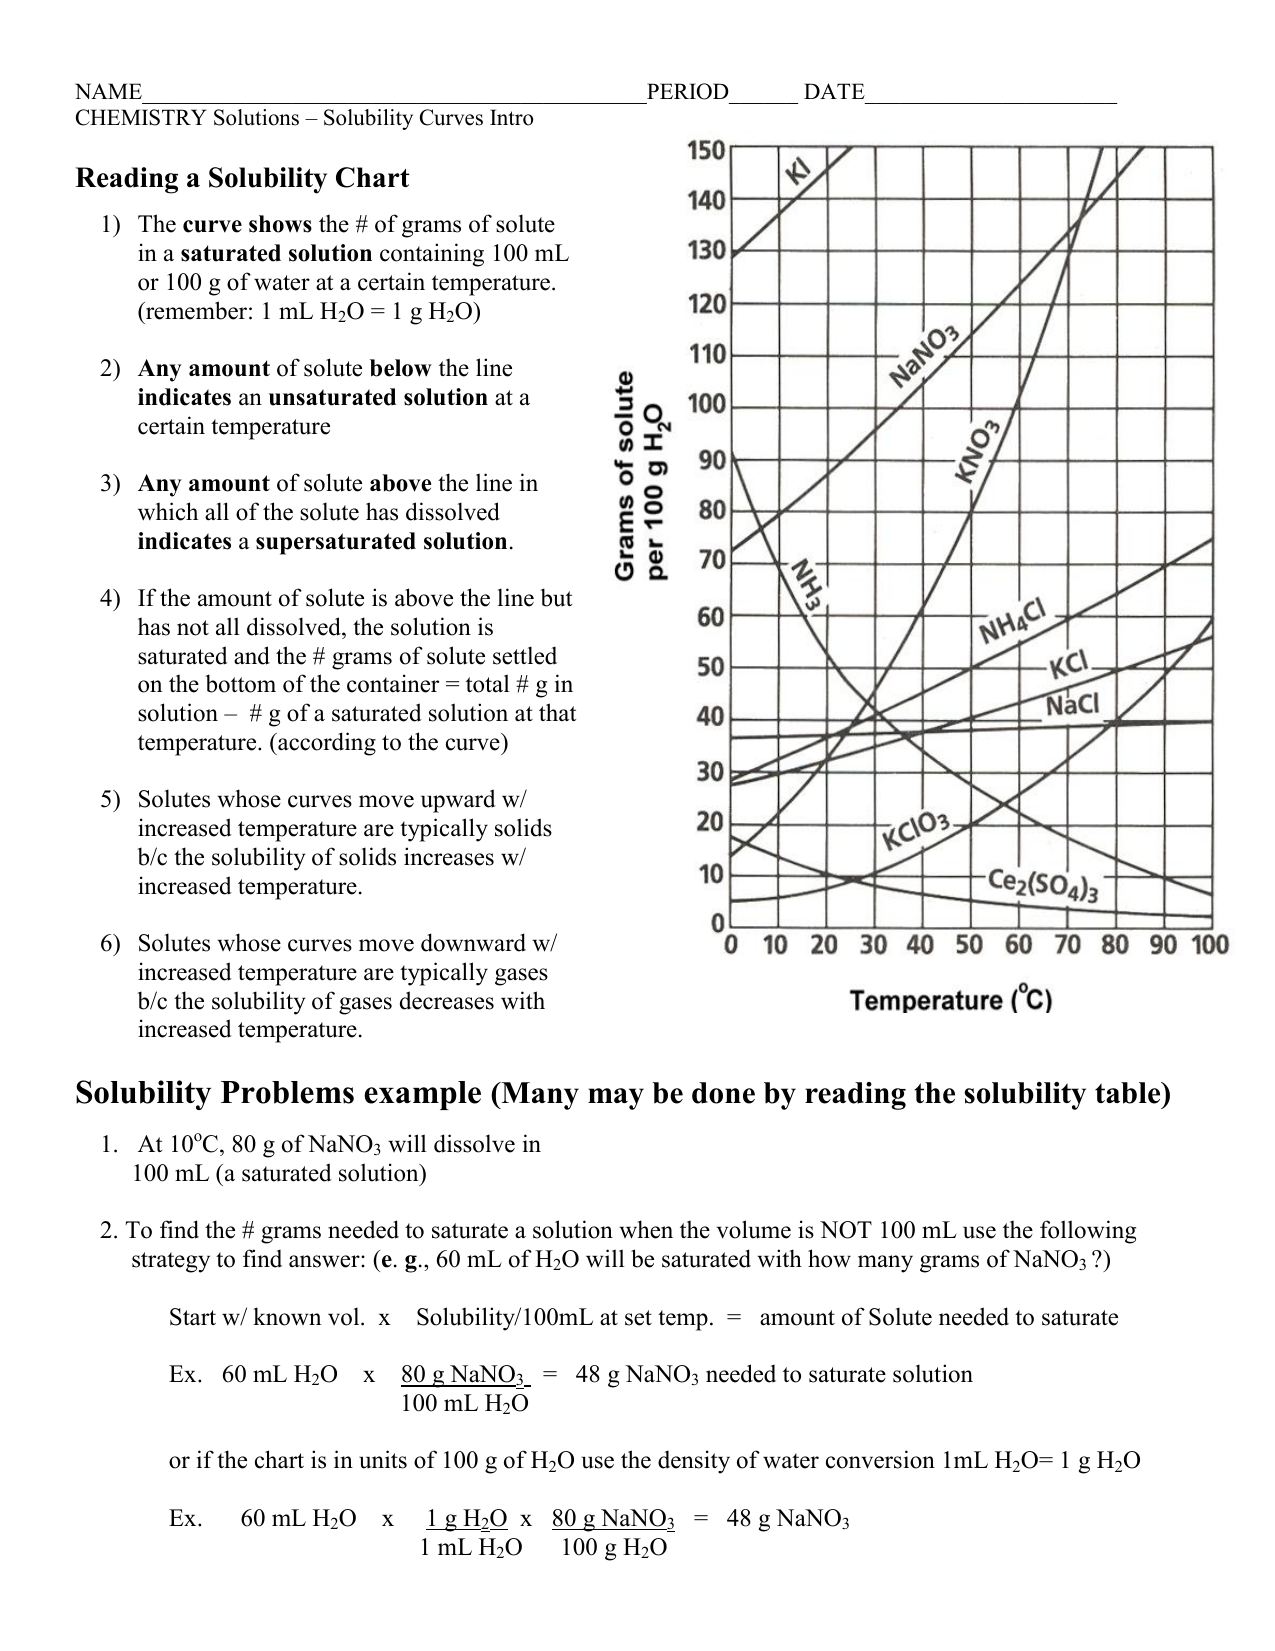 Worksheets Solubility Curves Worksheet Answers solubility problems example